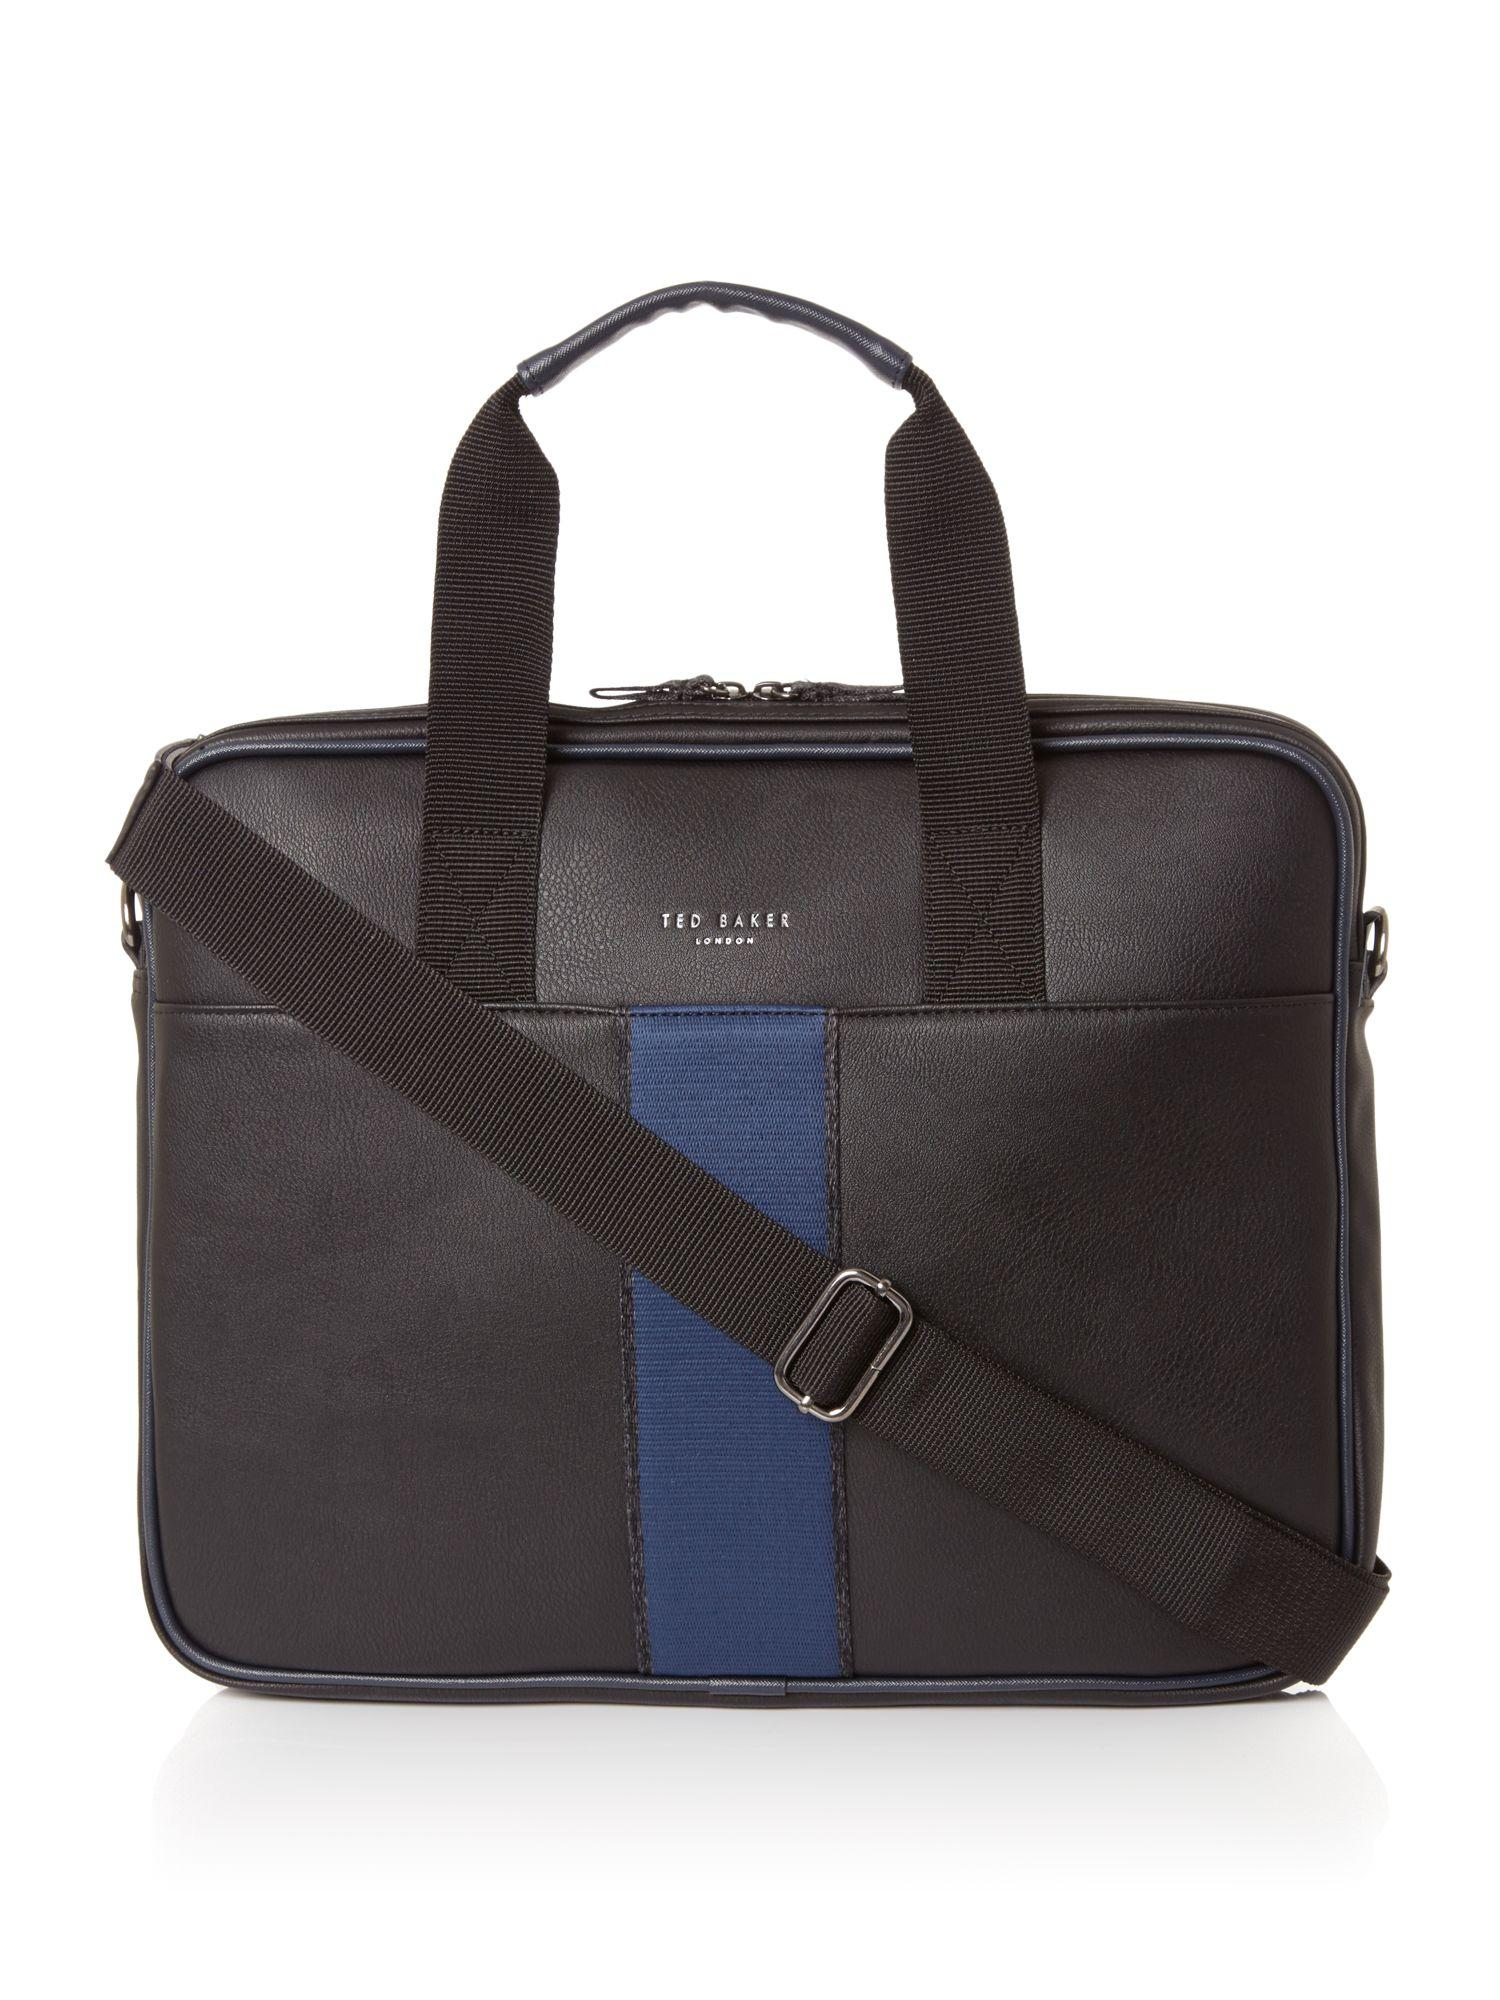 ted baker briefcase photo - 1